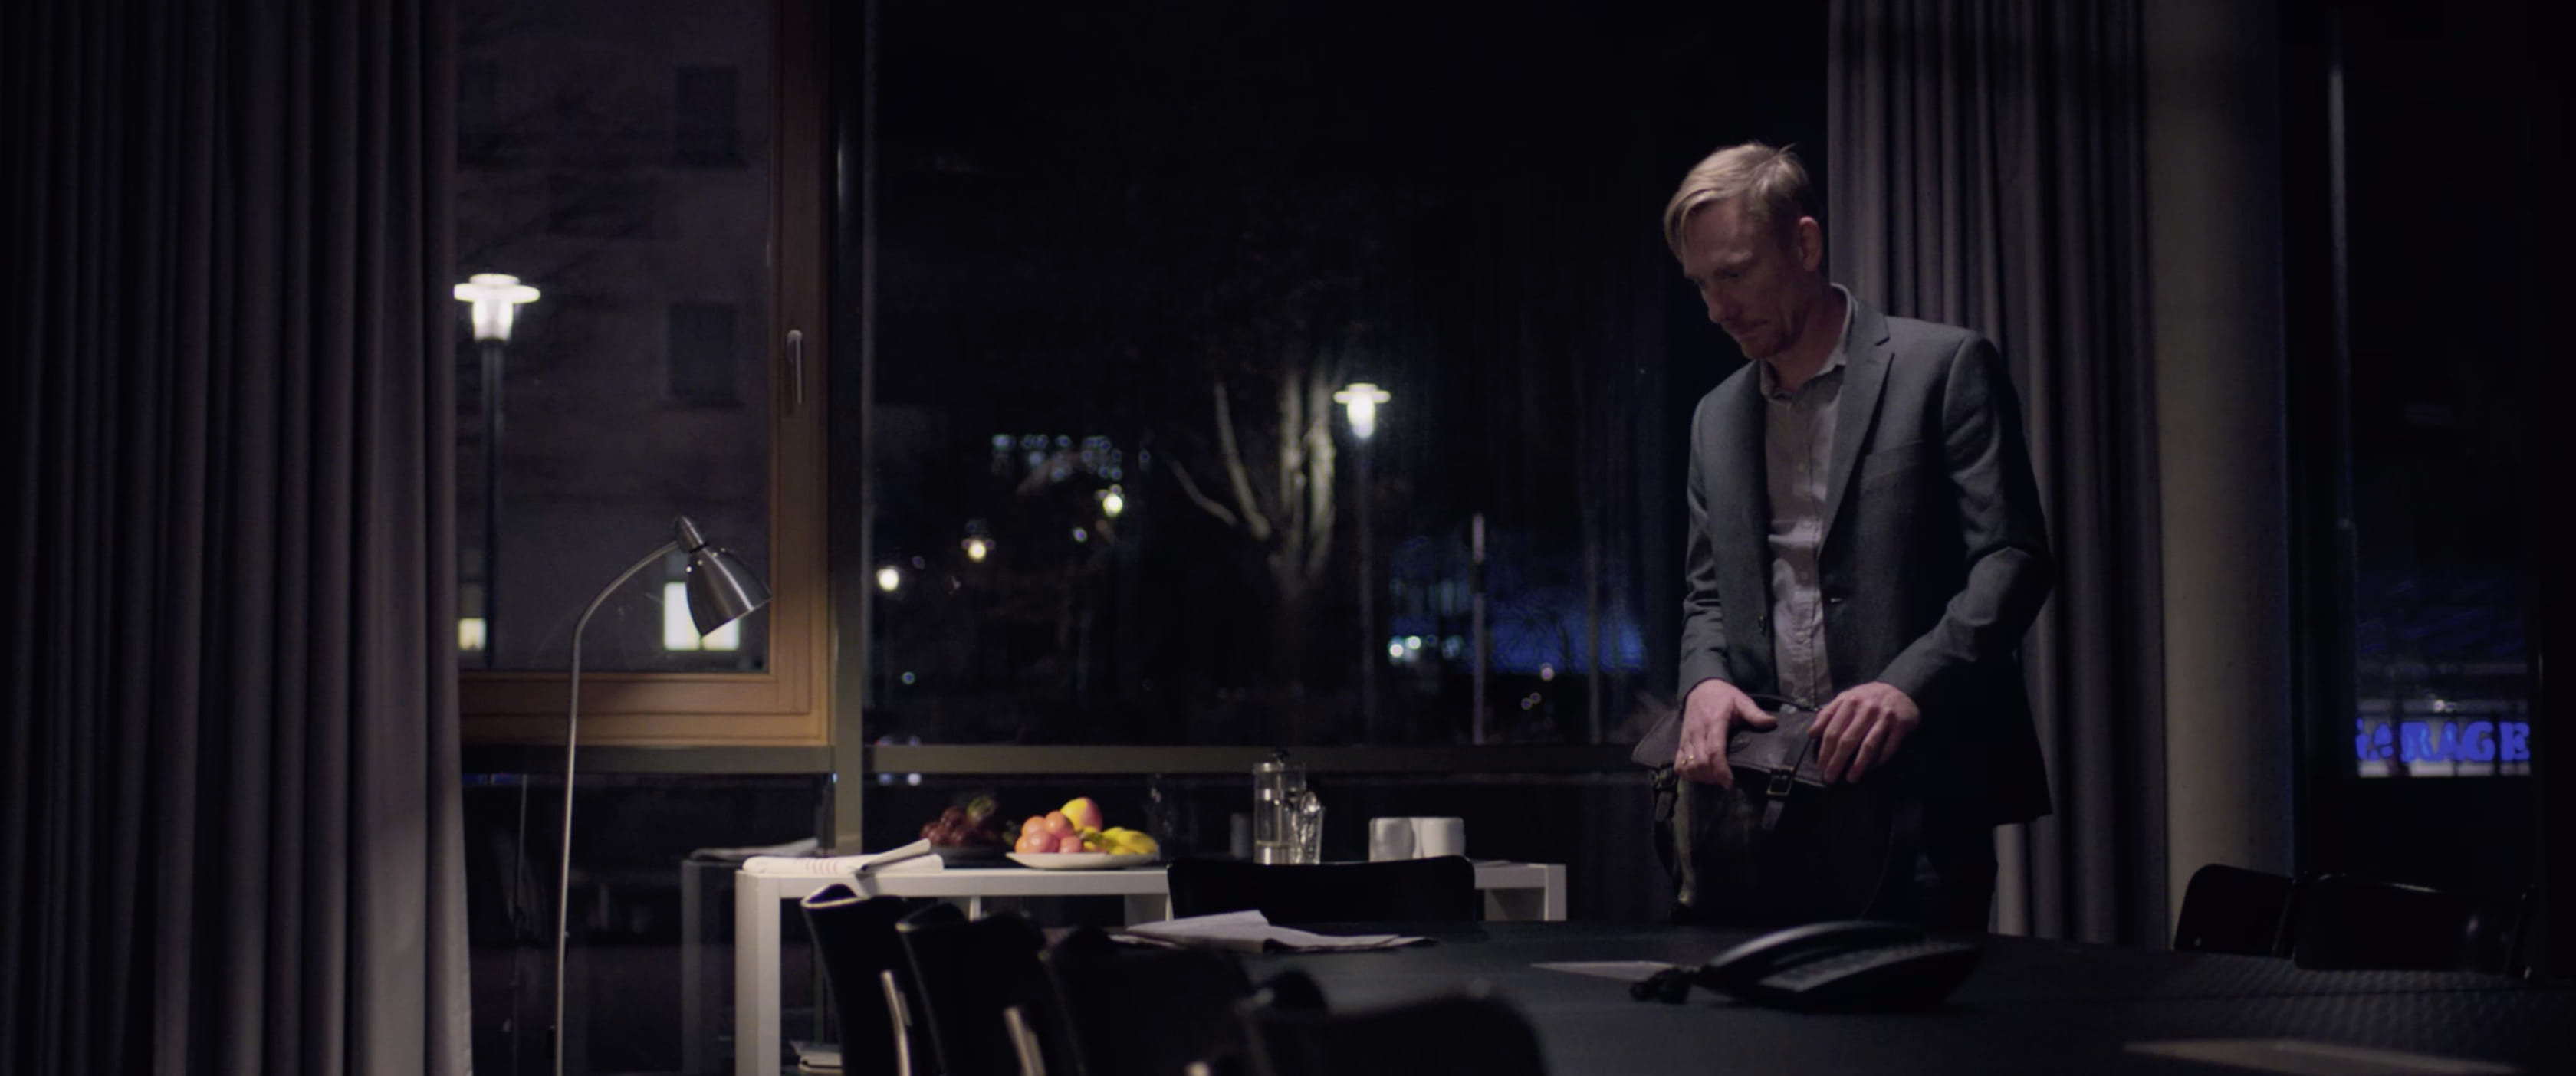 A man alone at night in a conference room, packing his briefcase absentmindedly.